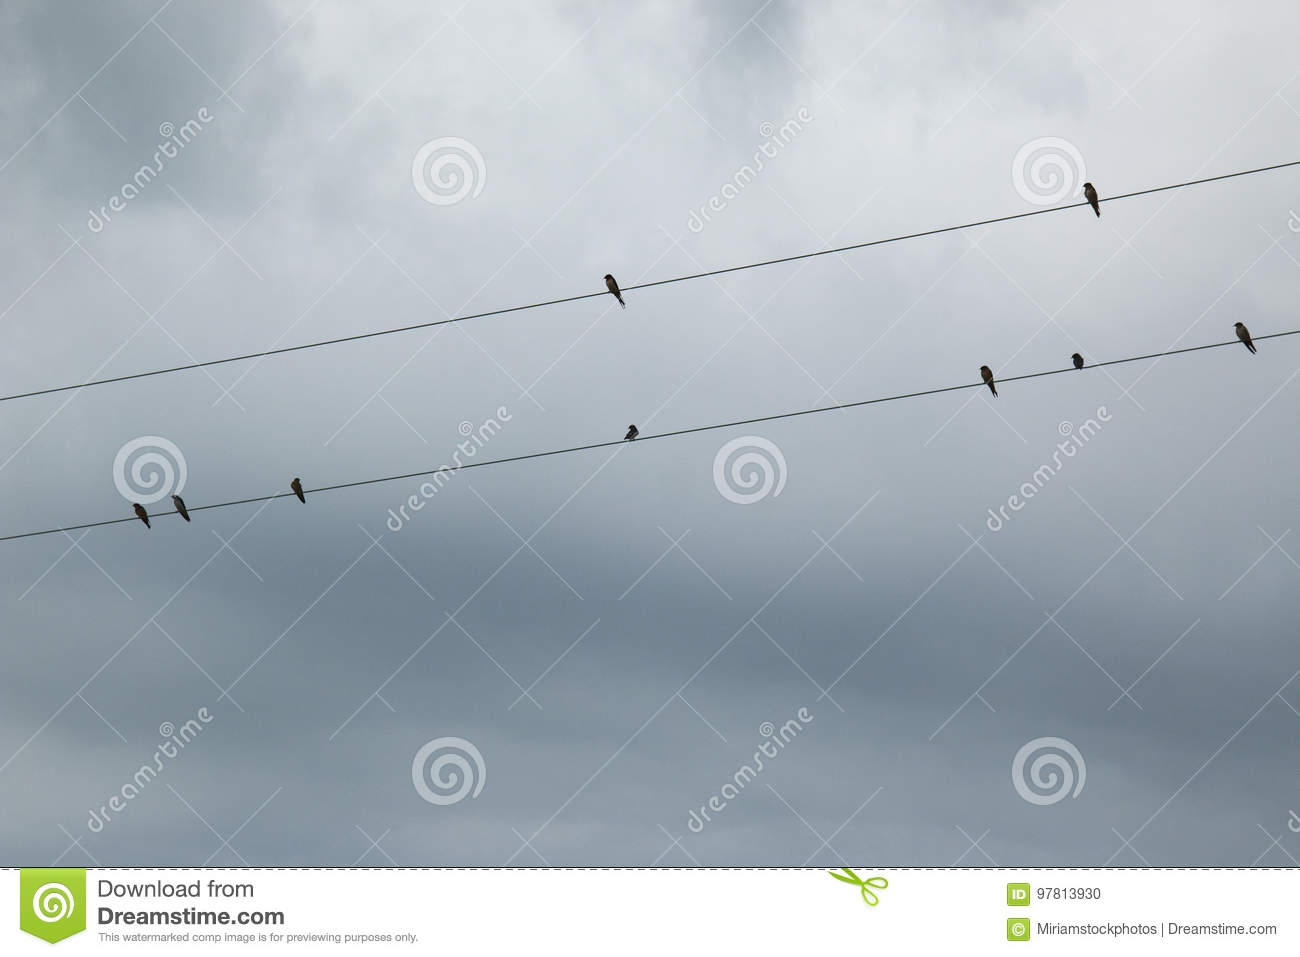 Barn Swallows on a Wire stock photo. Image of nature - 97813930